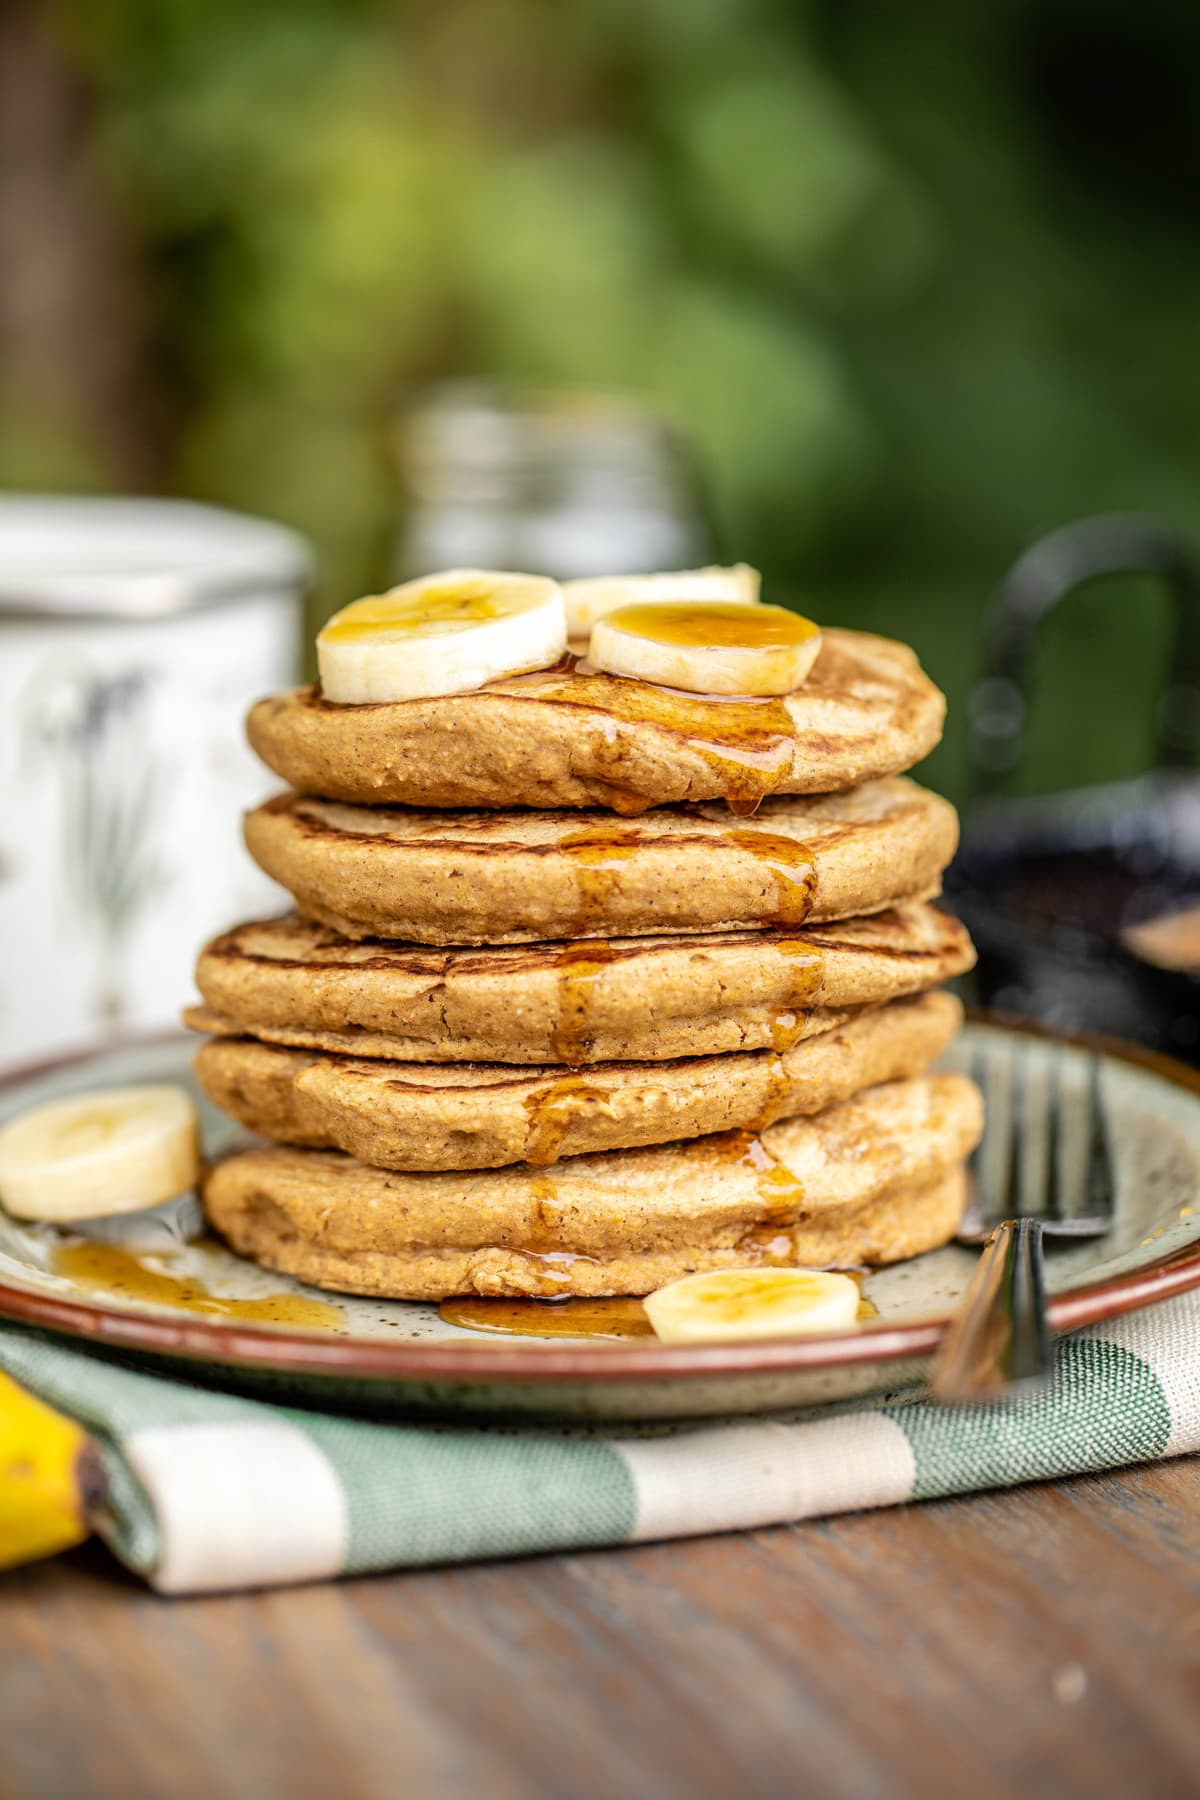 stack of vegan pancakes topped with maple syrup and banana coins on tan speckled plate